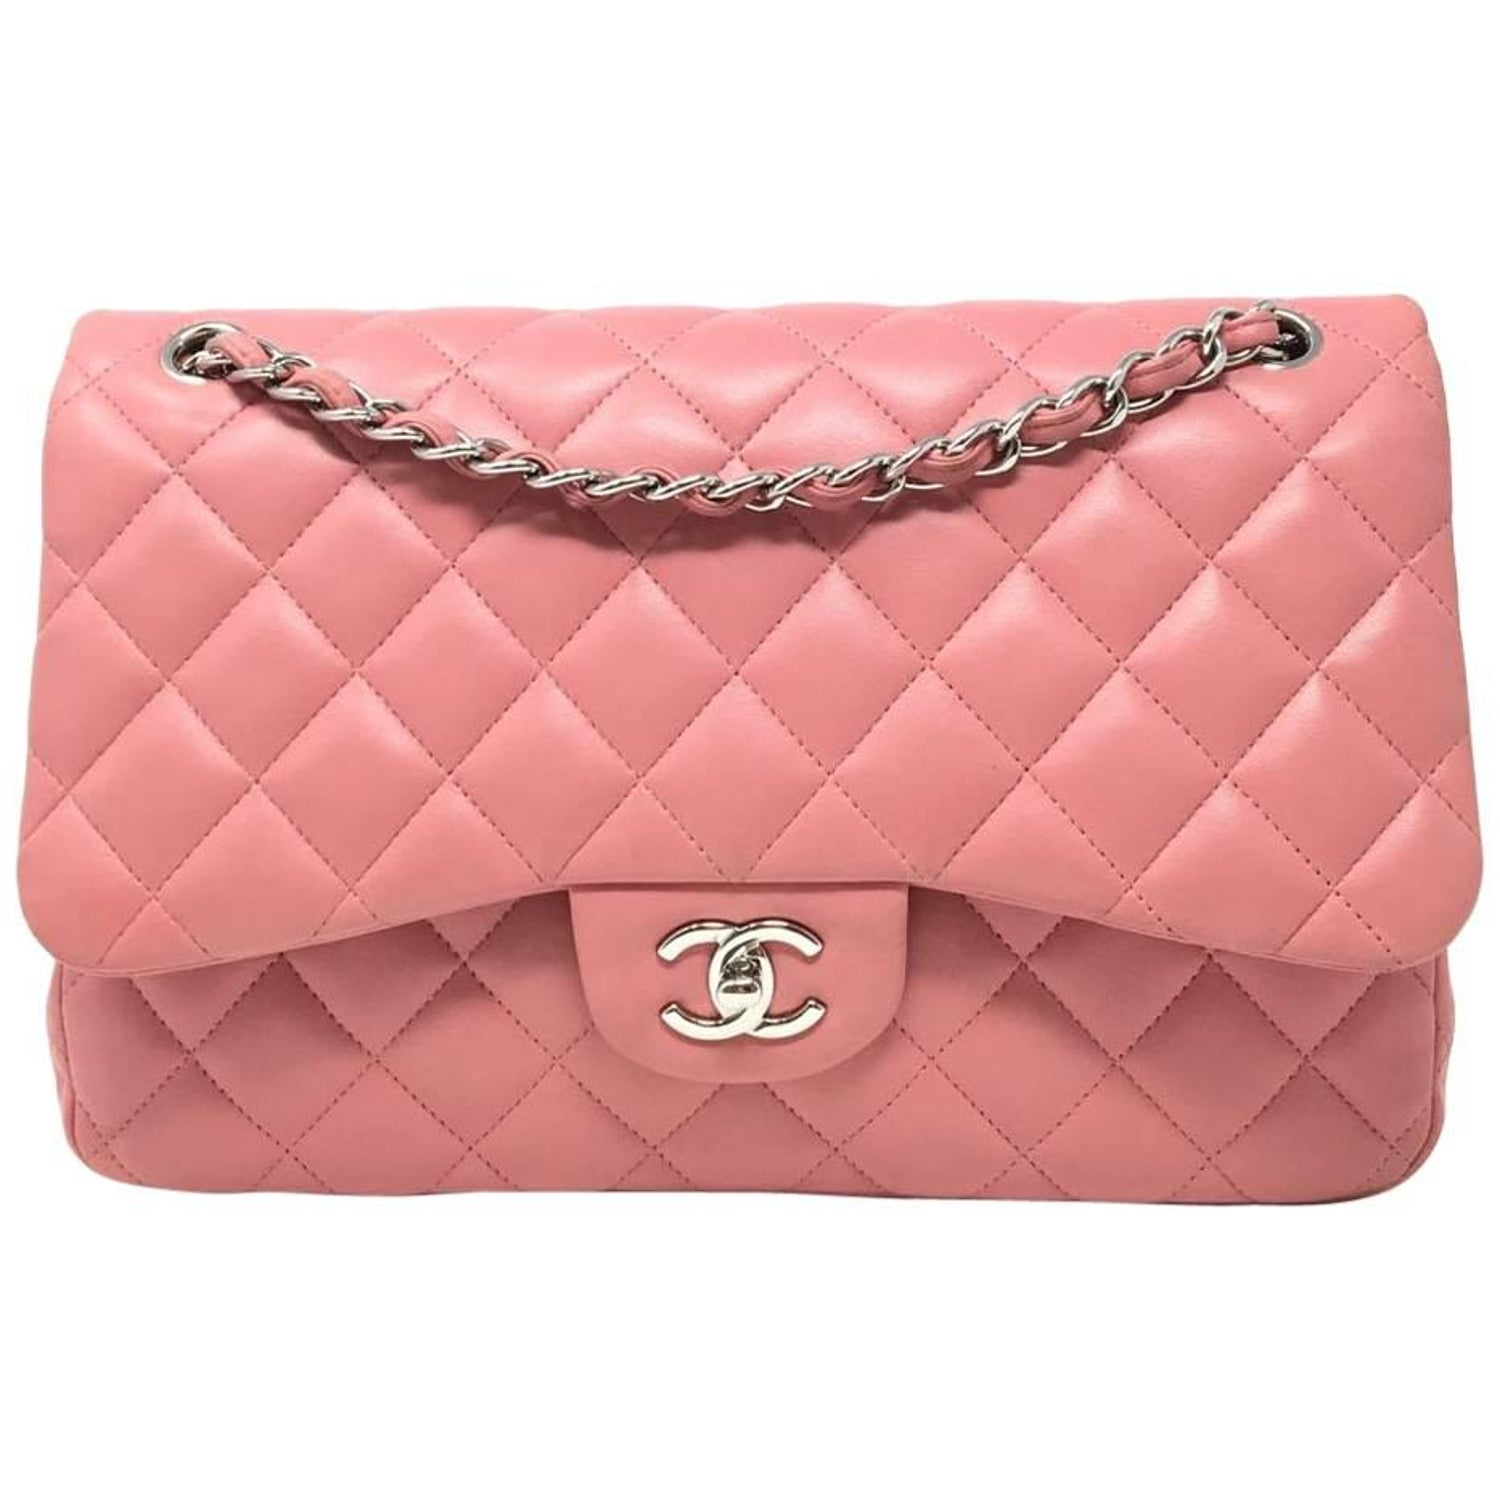 1c3e5c3d914 Chanel Jumbo Pink Quilted Lambskin Leather Double Flap Bag